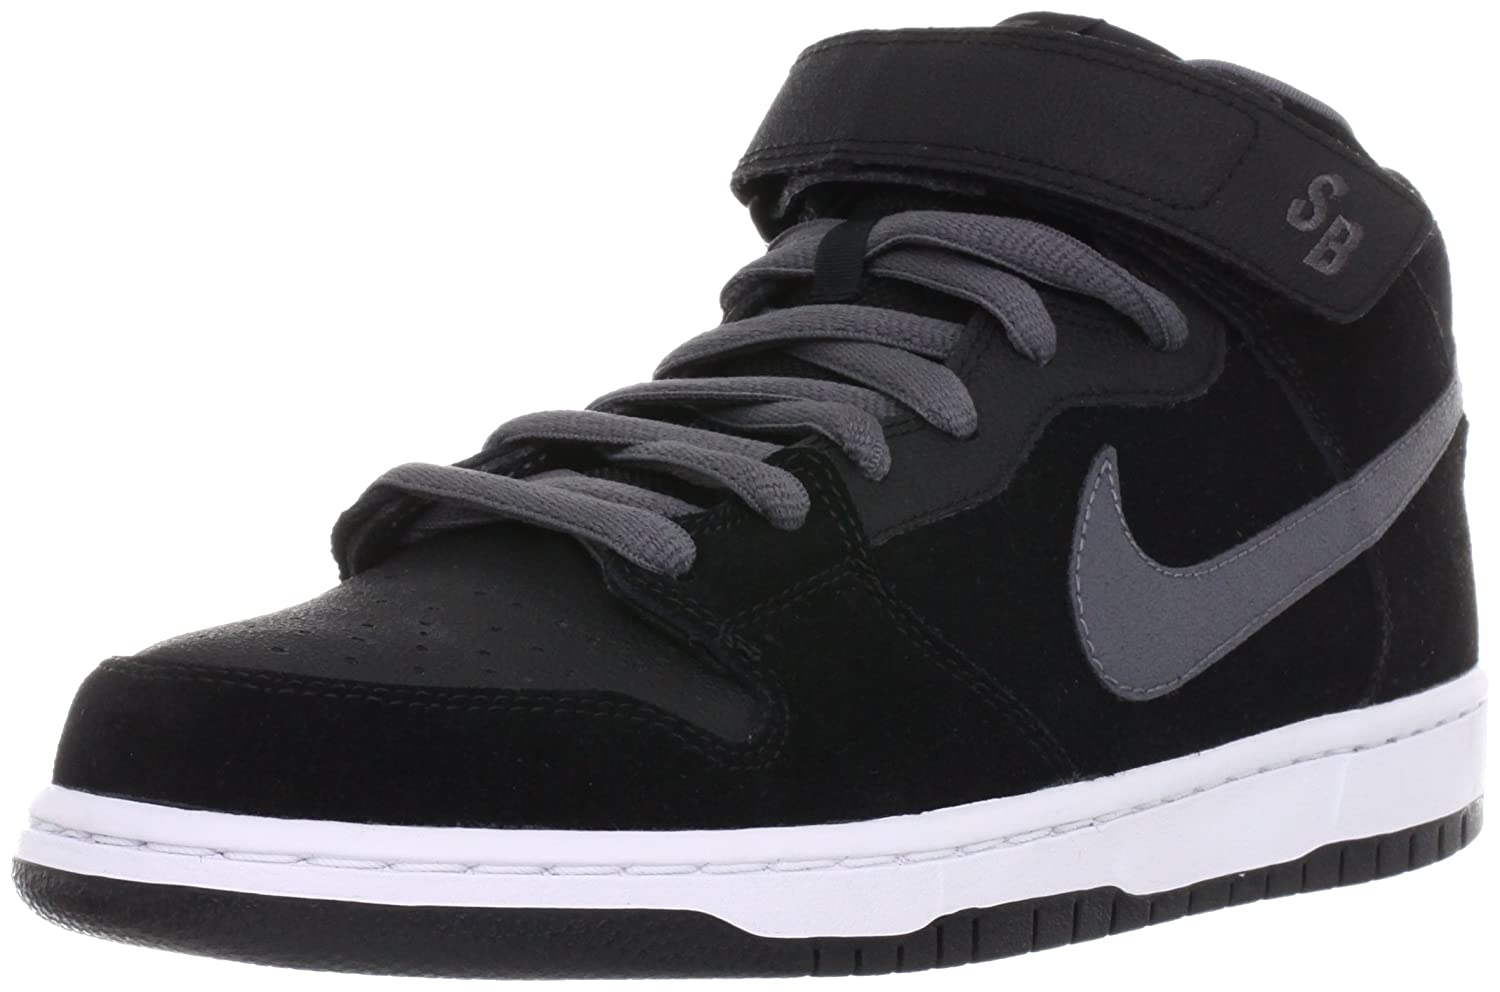 reputable site 25e57 bd4a6 Amazon.com  NIKE SB Mens The Dunk Mid 9.5 Black  Fashion Sne